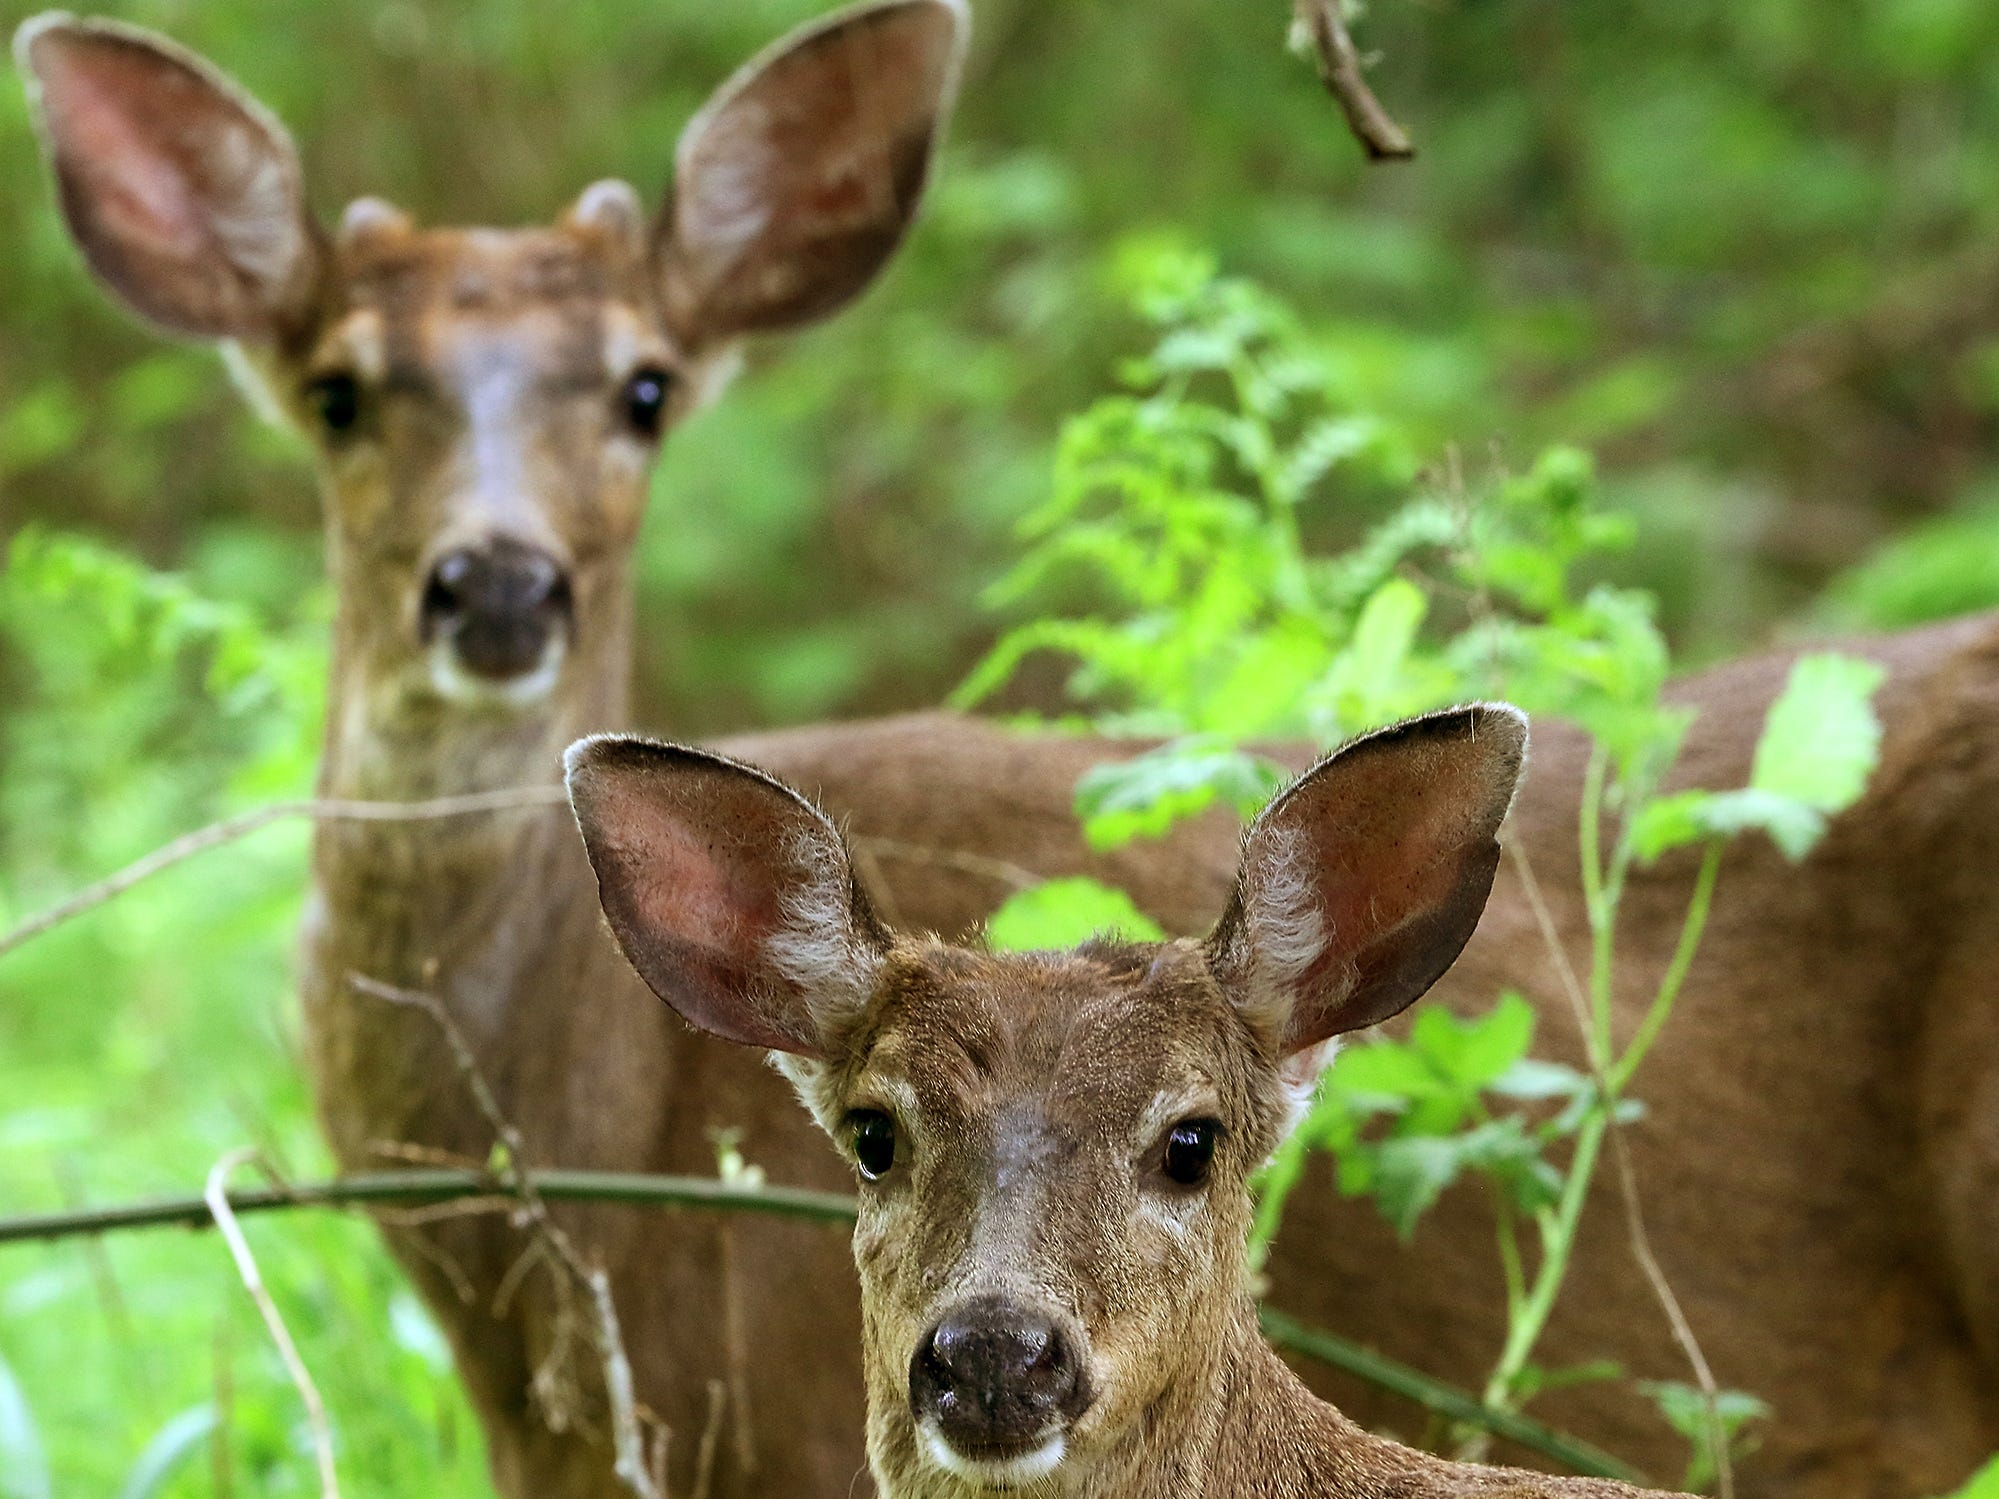 A pair of black-tailed deer pause as they make their way through the underbrush near Brownsville, Washington on Saturday, May 5, 2018